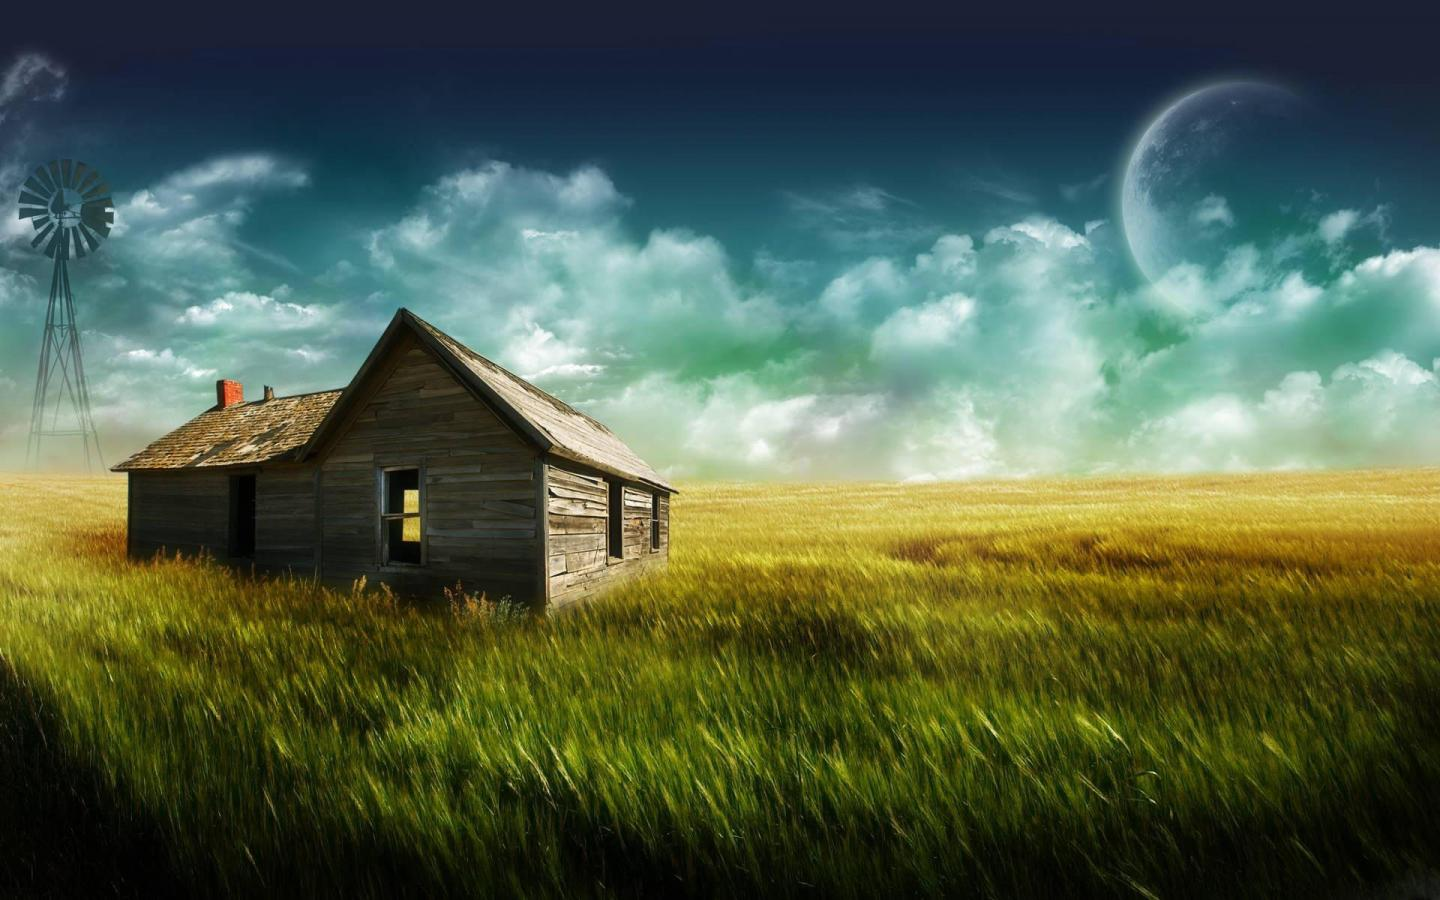 House HD Wallpapers 1440x900 Photography Wallpapers 1440x900 Download 1440x900